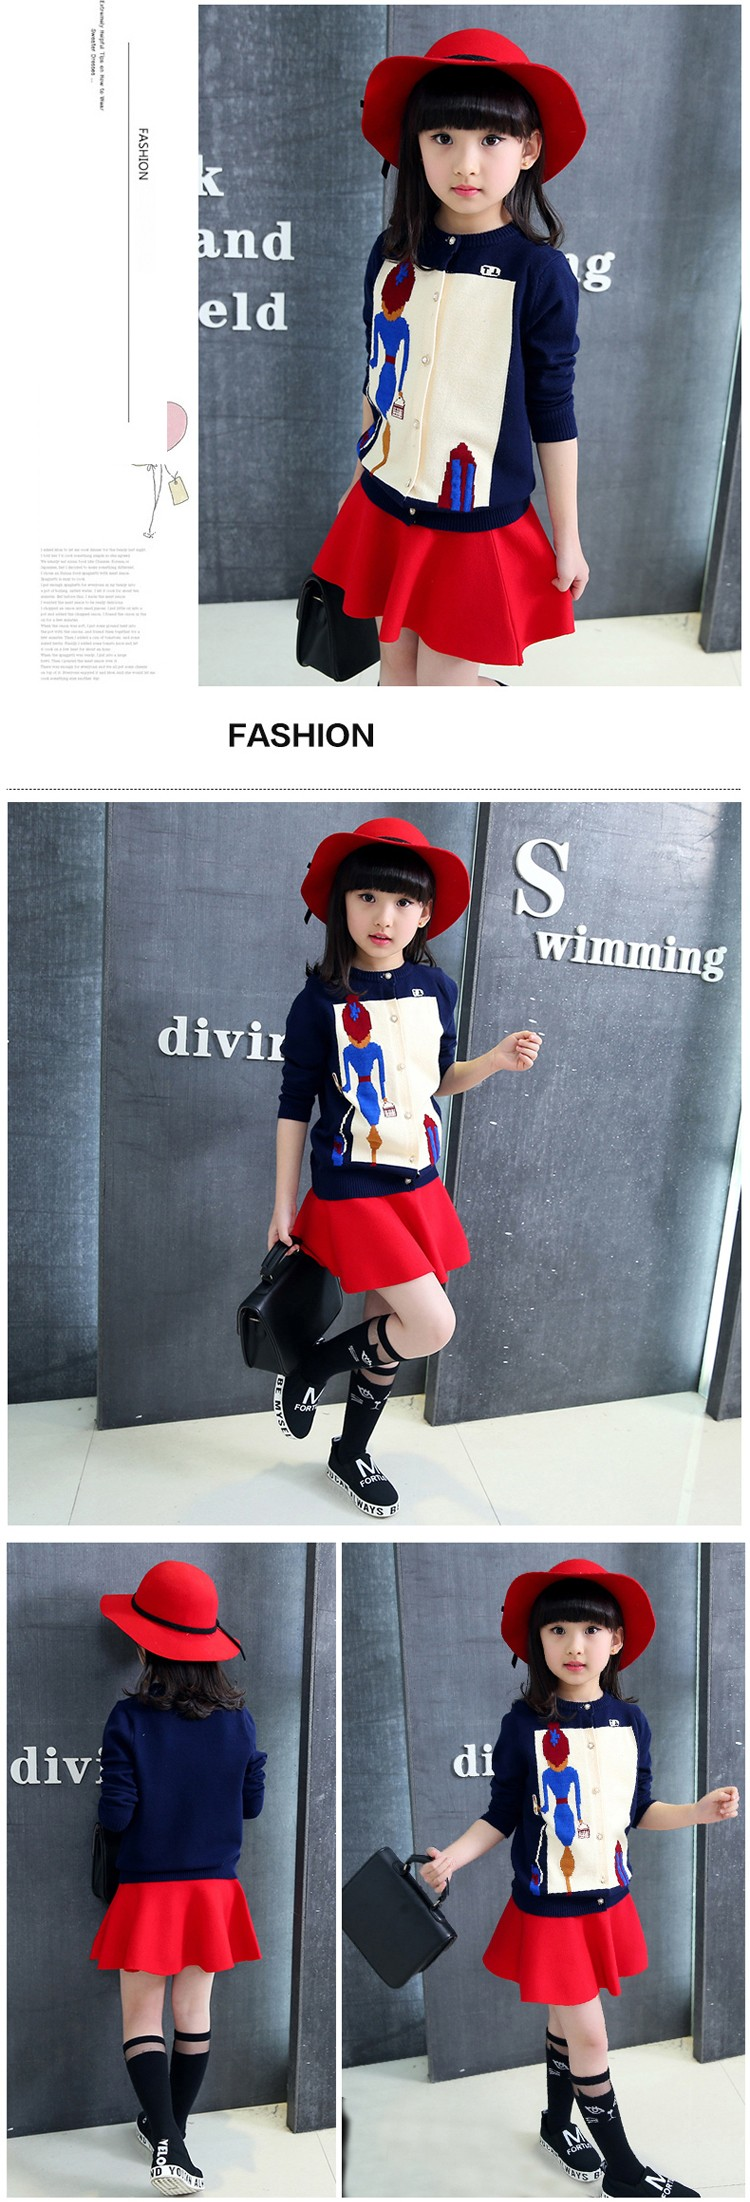 character knitting girls cardigan sweater kids red black long sleeve knitted girls sweater jacket winter autumn 2016 girls tops clothes  6 7 8 9 10 11 12 13 14 15 16 years old big little teenage  girls knitted sweater clothing (7)